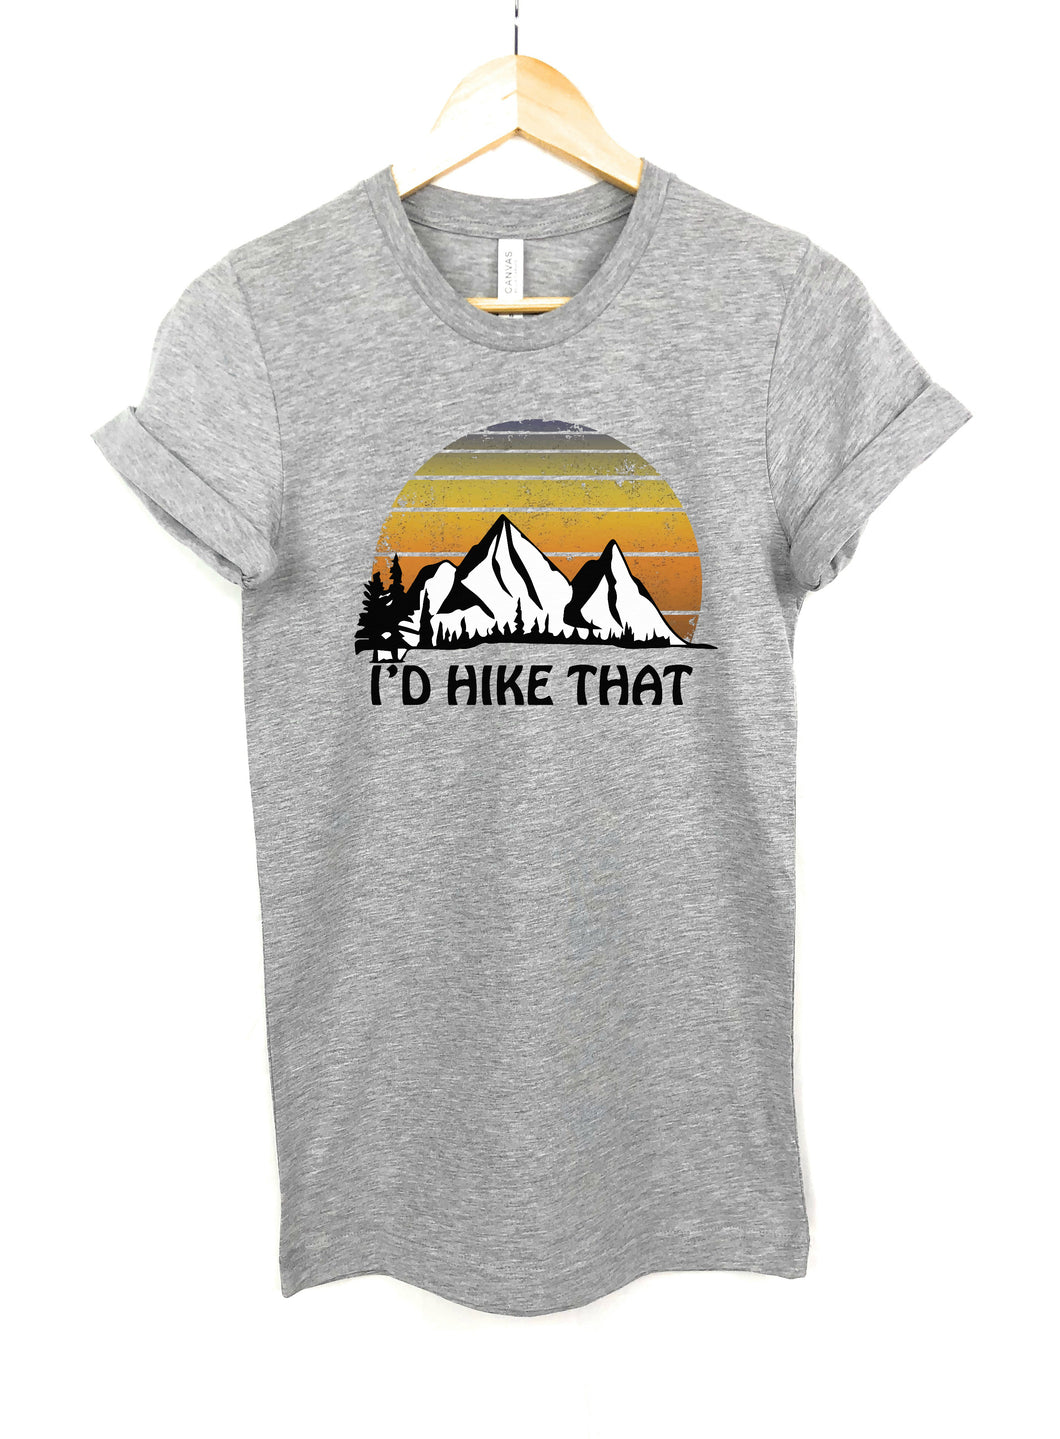 id hike that - three peaks clothing